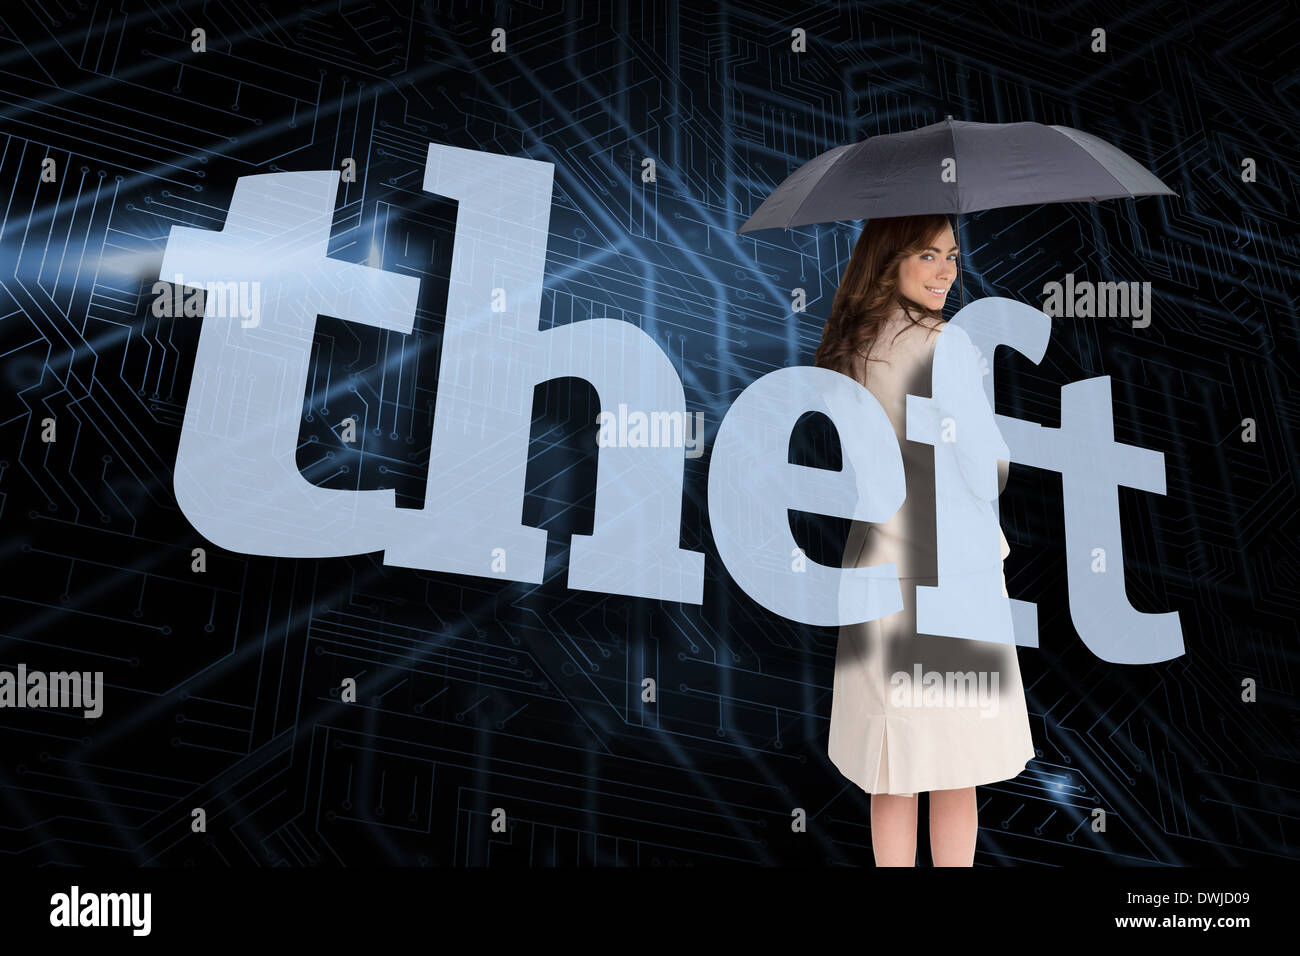 Businesswoman holding umbrella behind the word theft - Stock Image